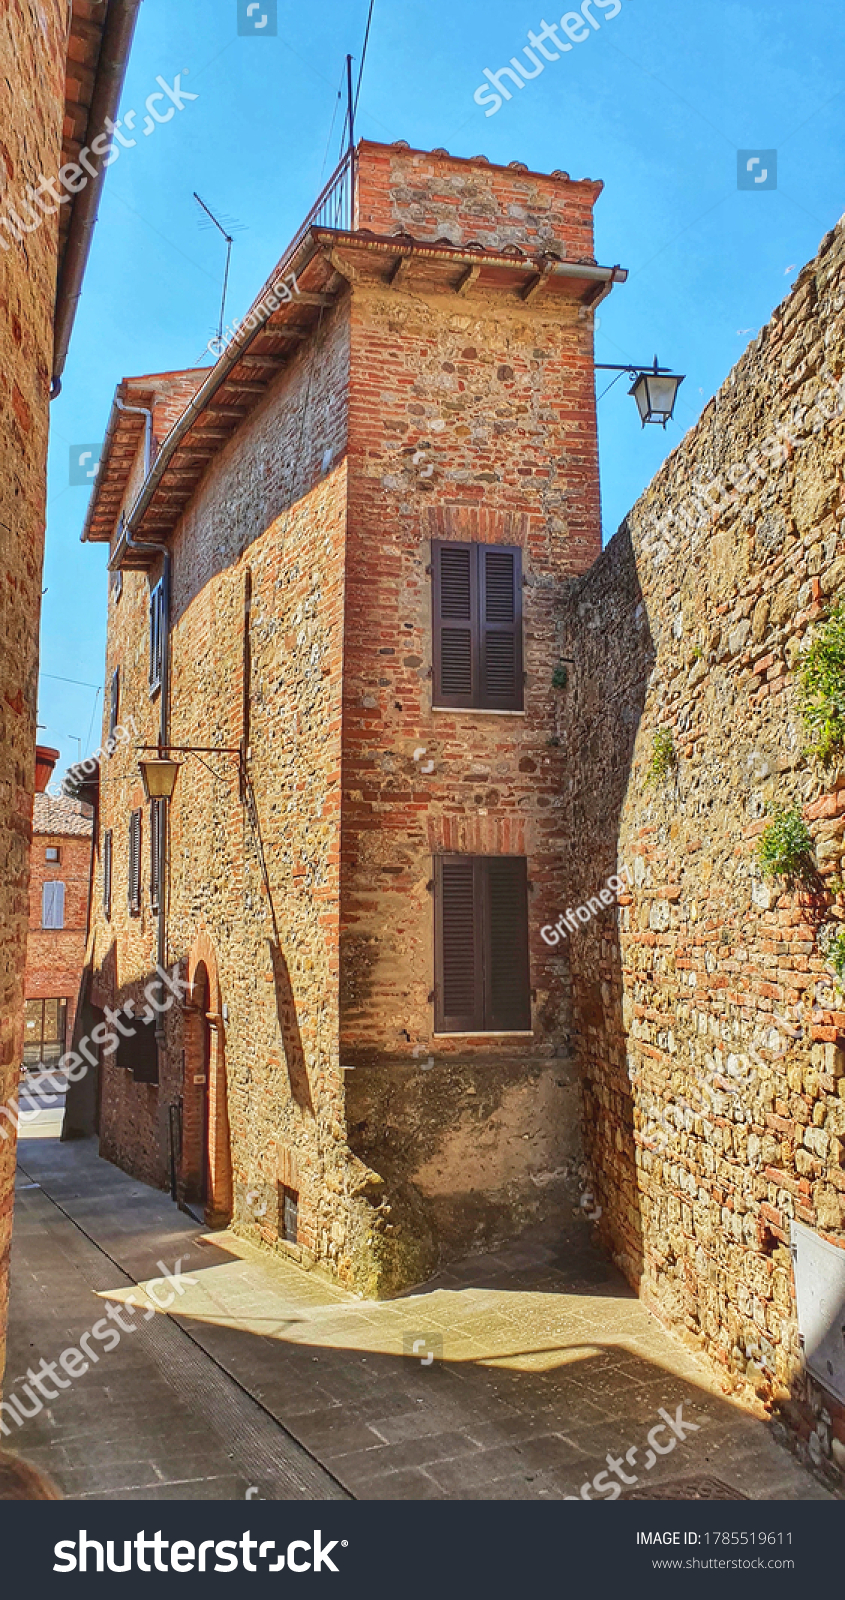 Strange house in an alley of the Medieval Town of Città della Pieve, Umbria, Italy.